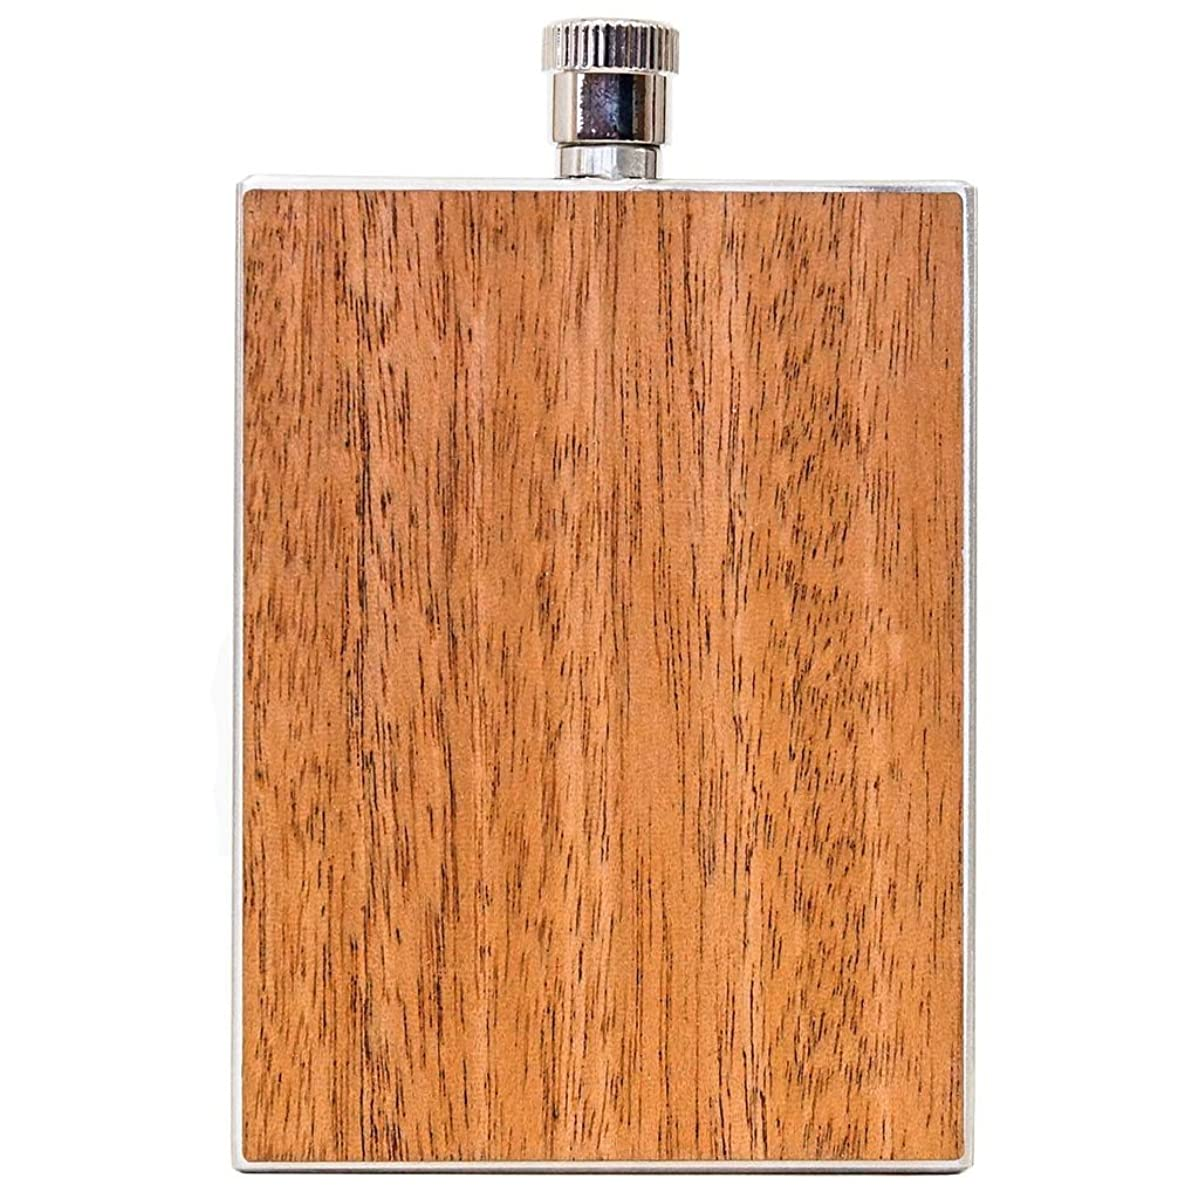 WOODCHUCK USA Wooden 3 oz Flask in Mahogany - 100% Premium Wood